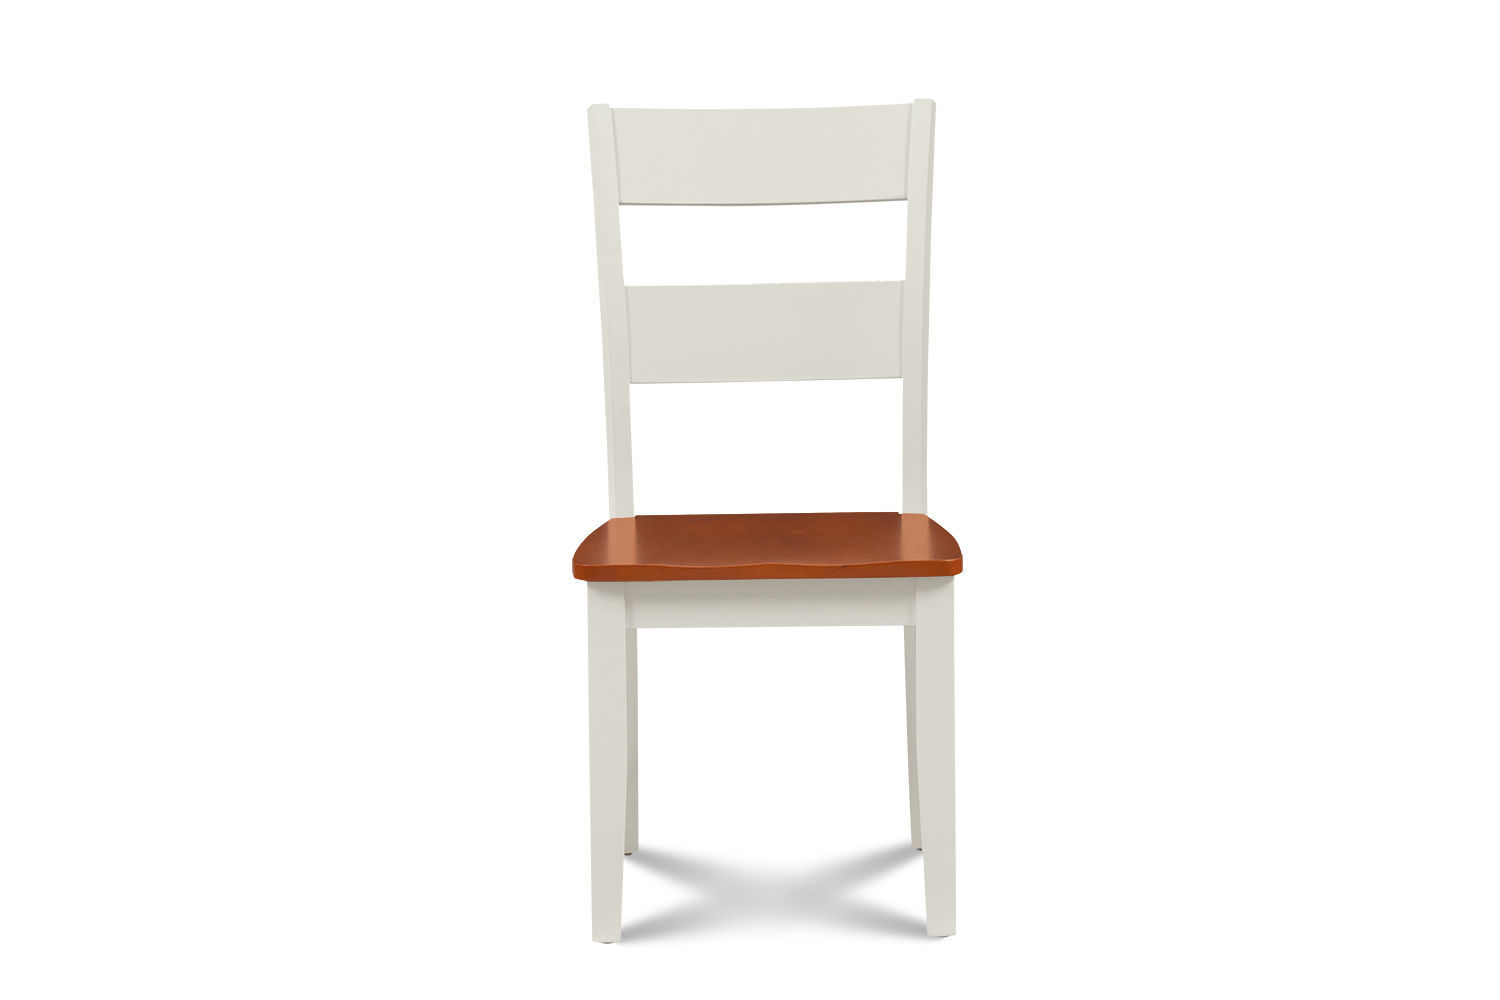 SET OF 2 KITCHEN DINING SIDE CHAIRS w/ WOODEN SEAT IN WHITE CHERRY